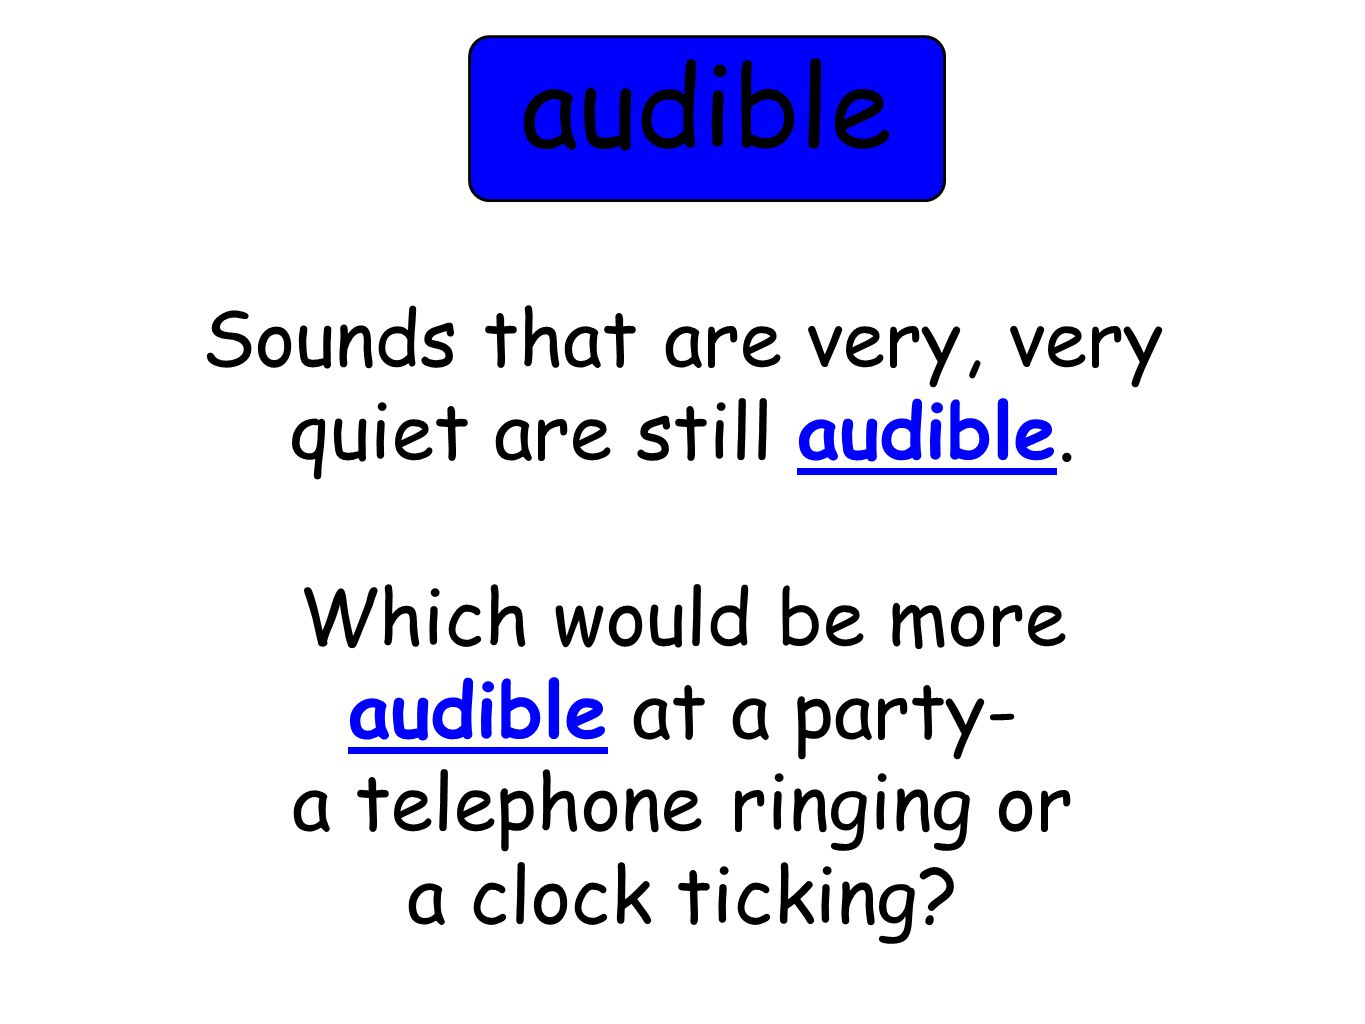 Sounds that are very, very quiet are still audible.